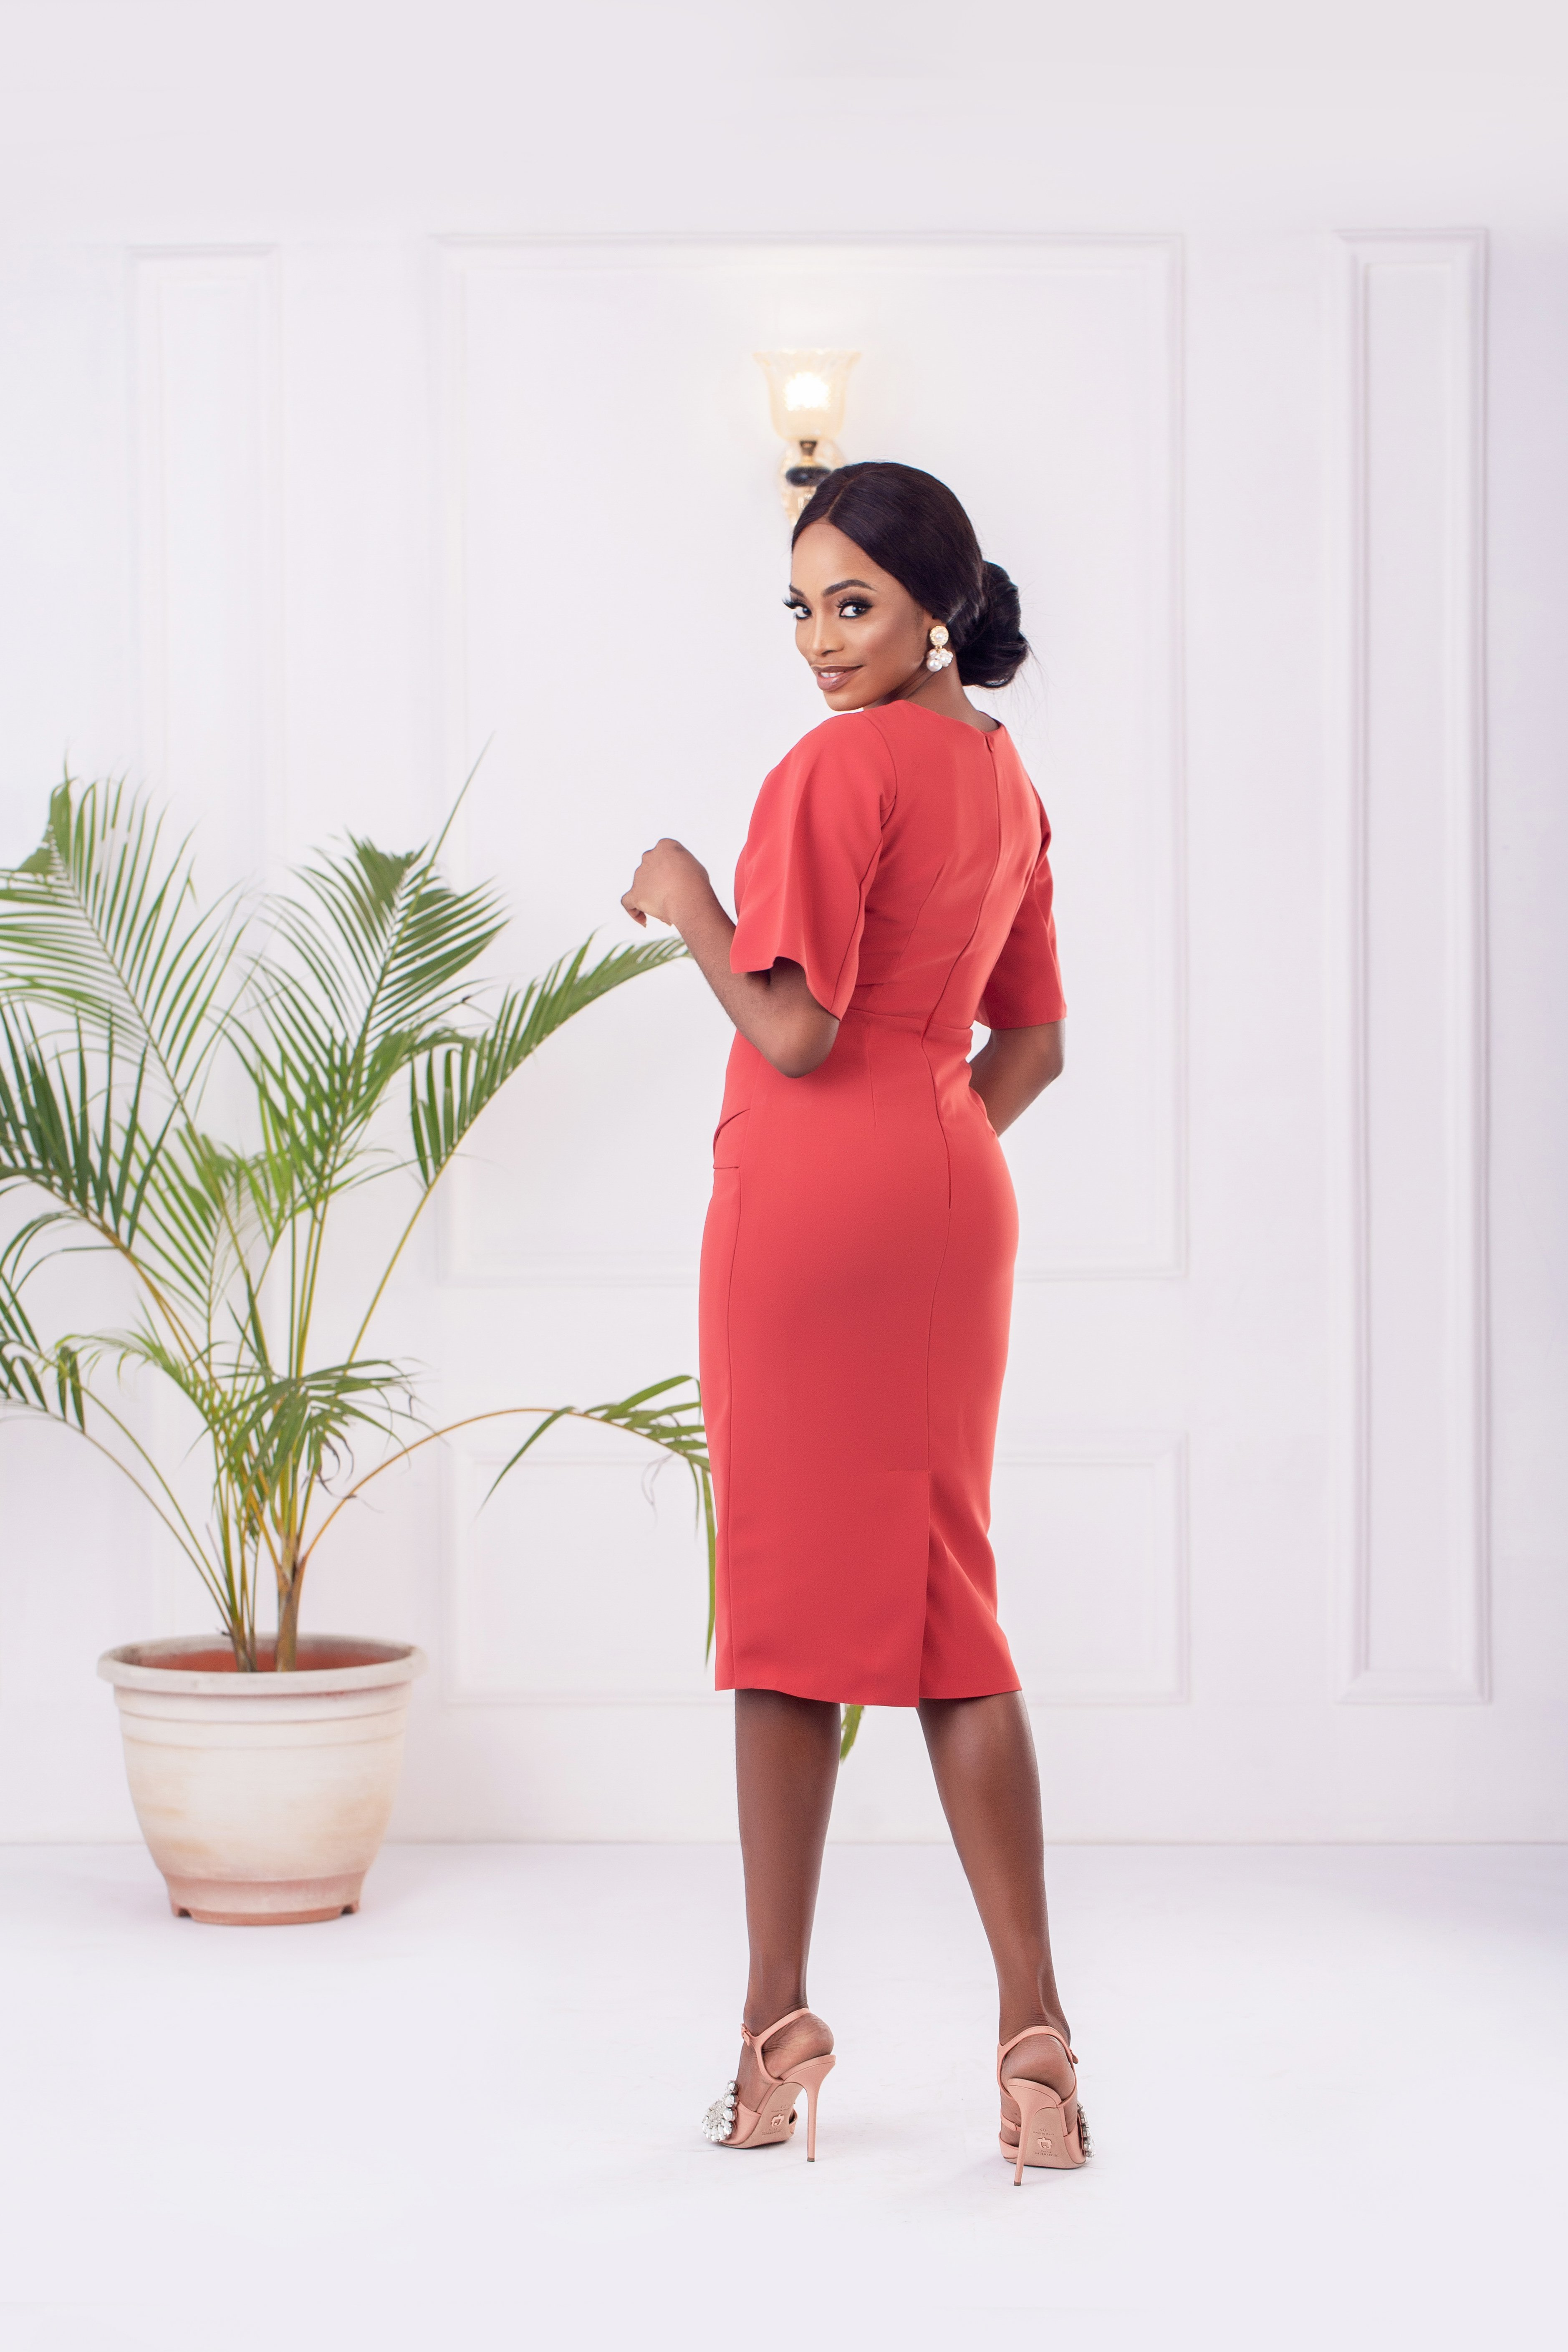 The Phoenix Architectural Dress in Punch Pink 3